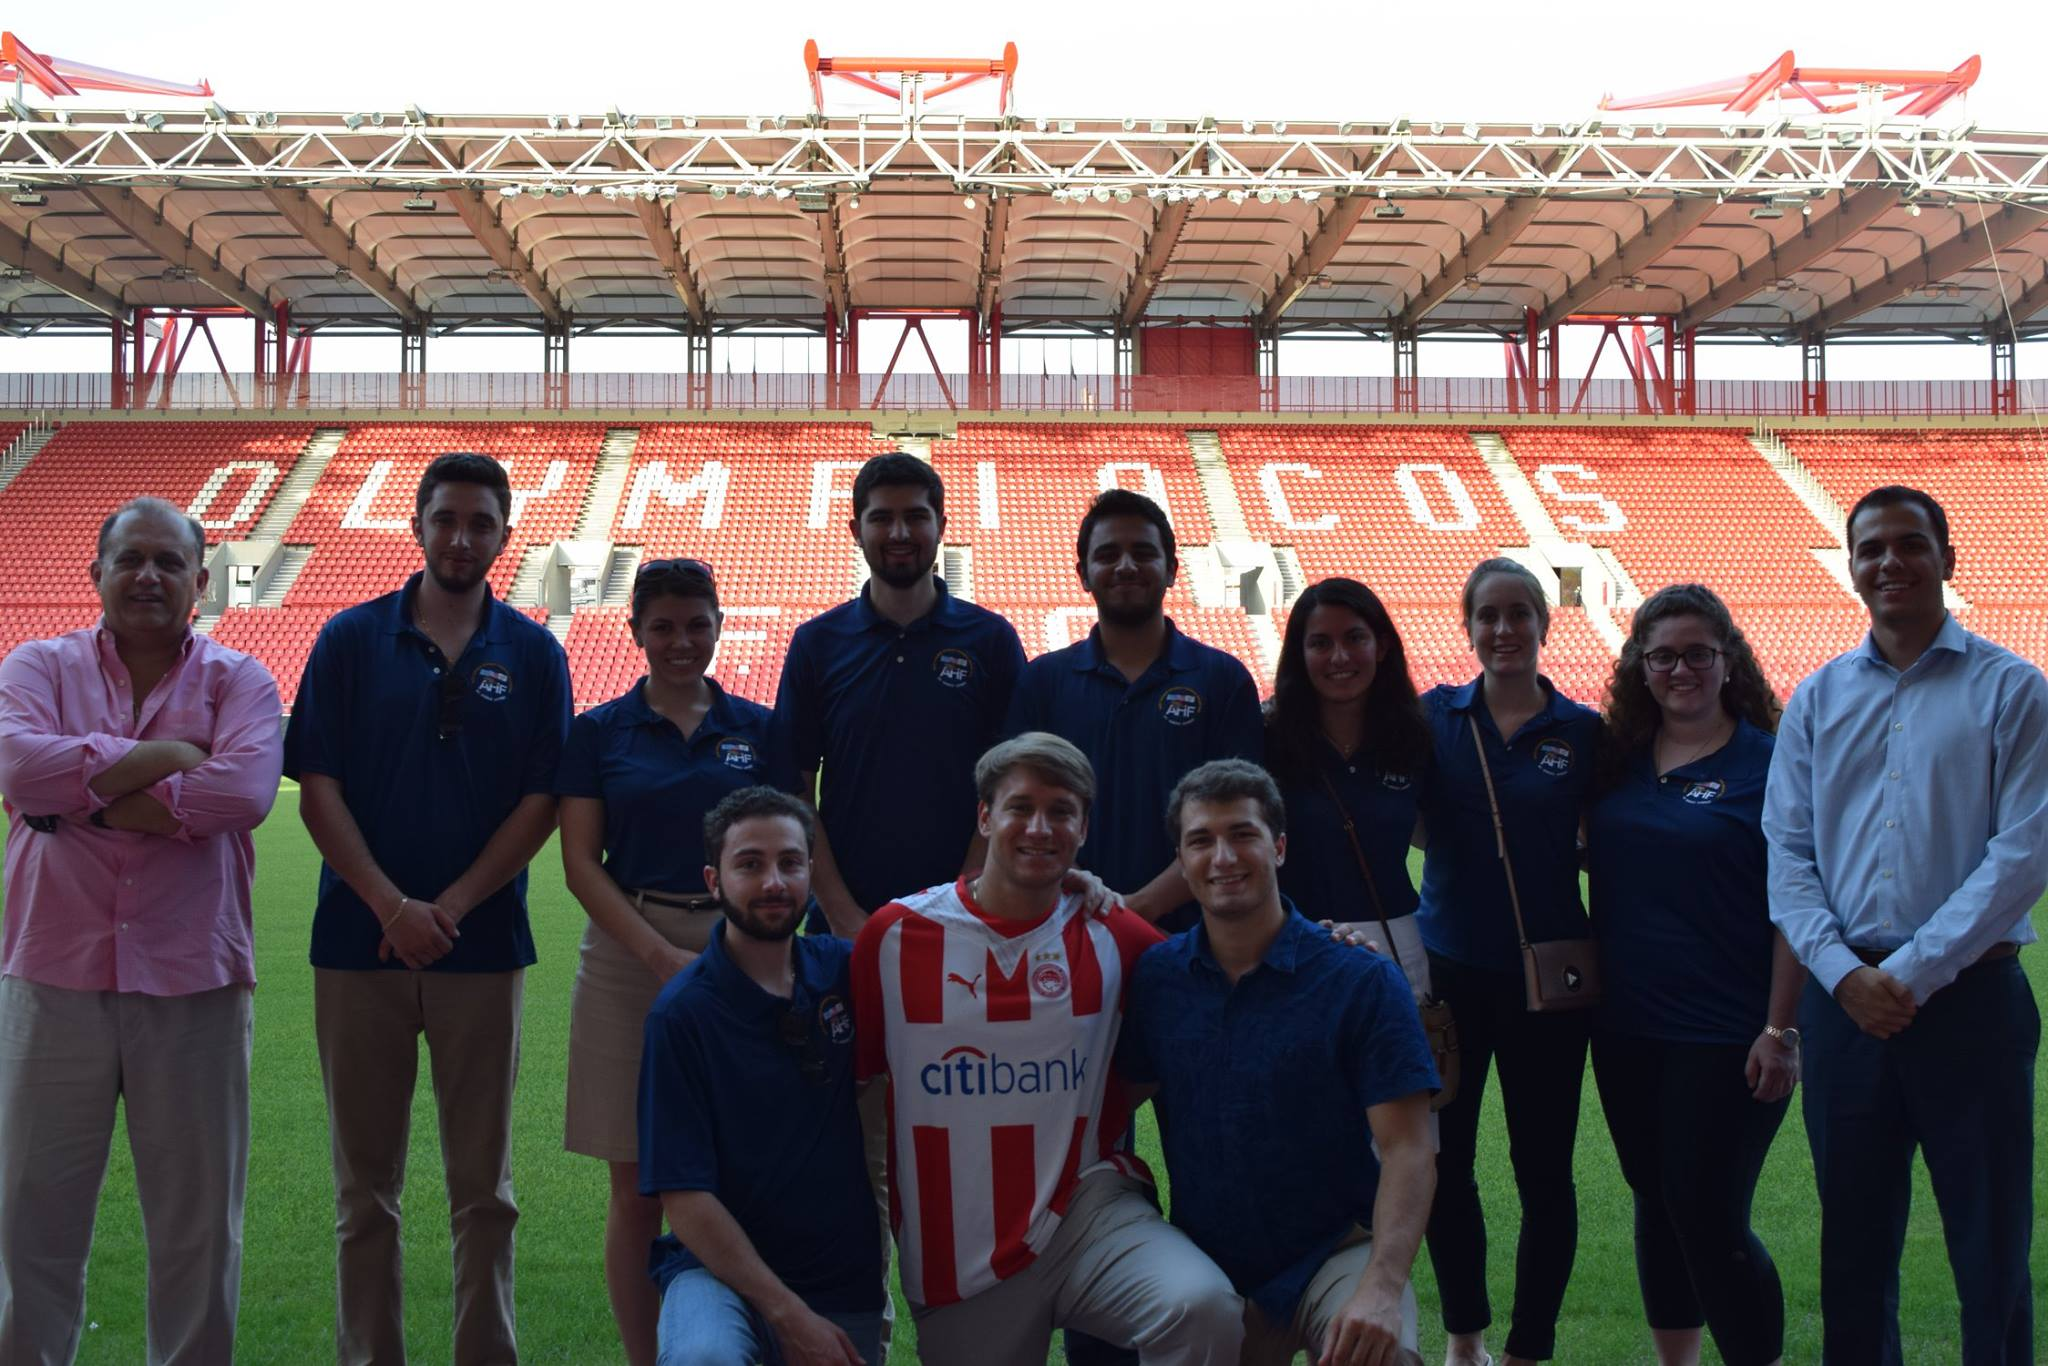 Dinner at Vammos restaurant, sponsored by Olympiacos President Evangelos Marinakis and hosted by Domenicos Masoulas.